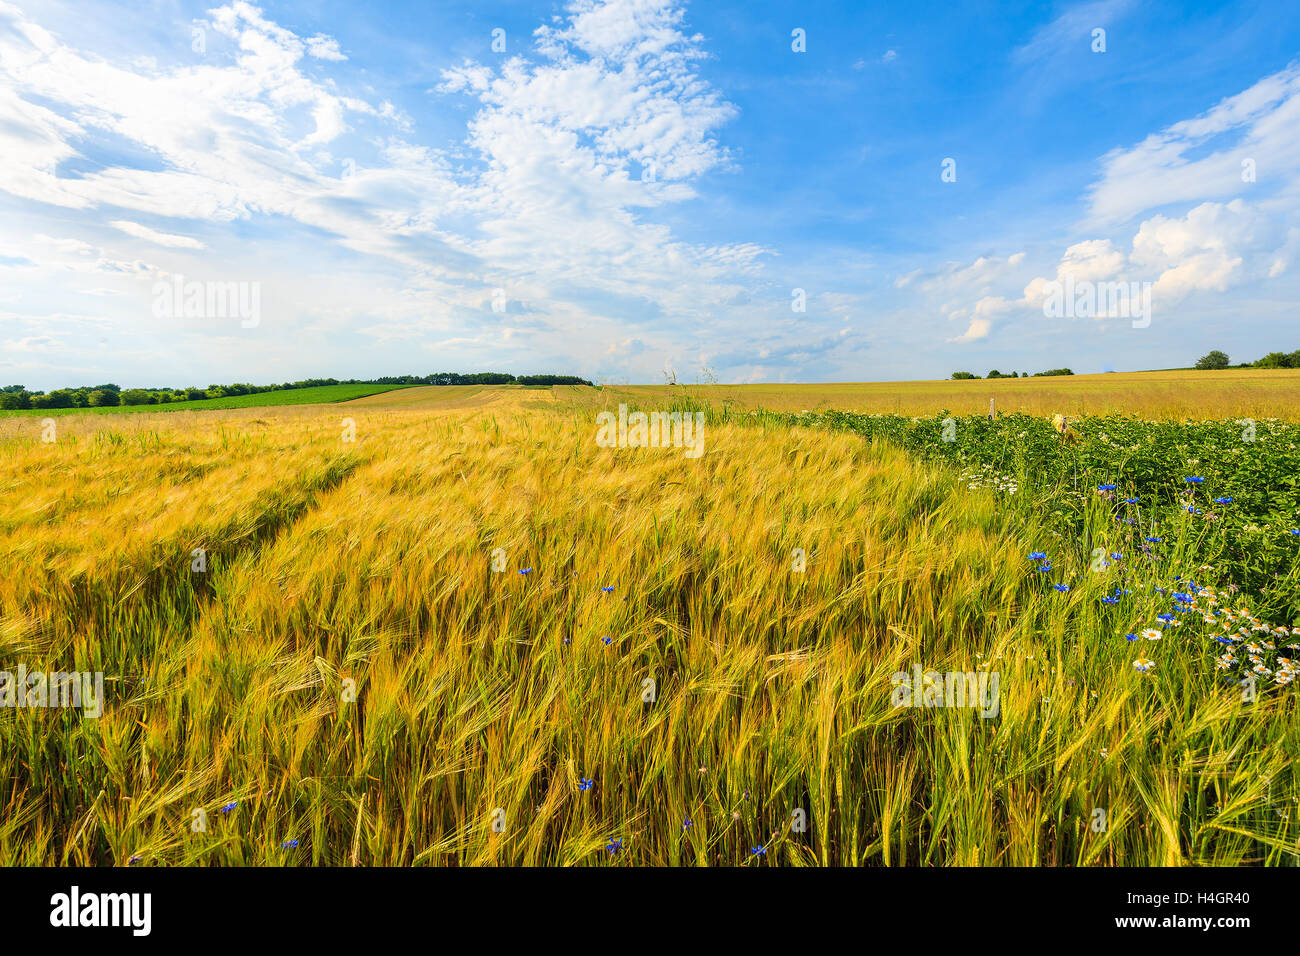 Beautiful golden color wheat field with white clouds on blue sky in summer landscape near Krakow, Poland Stock Photo